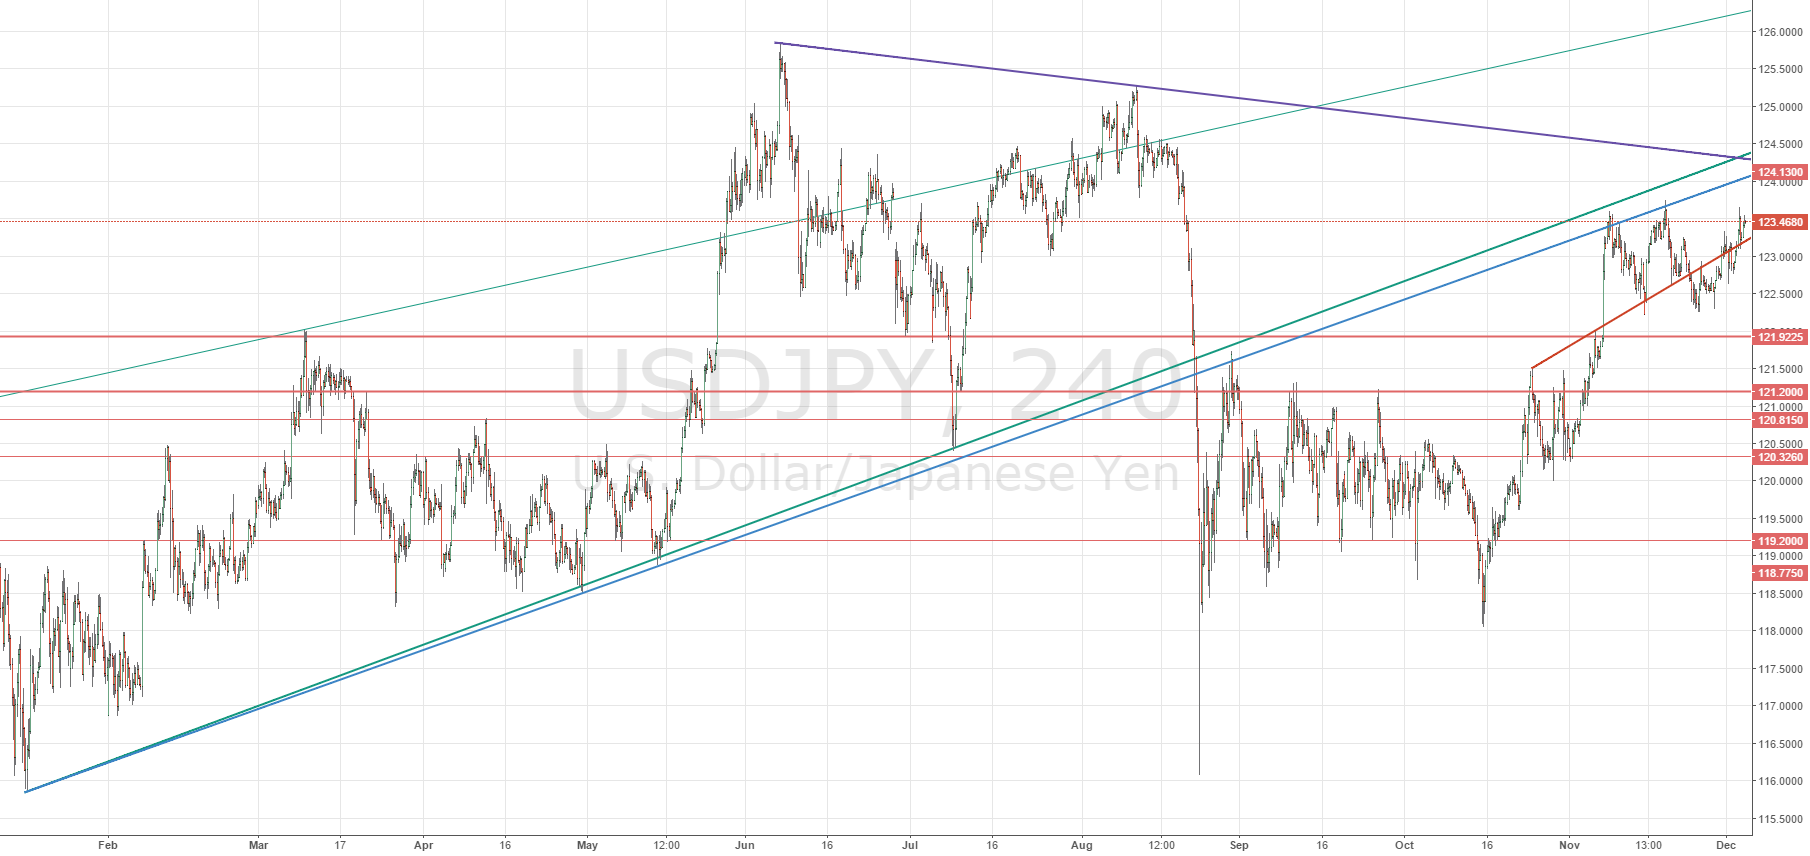 USDJPY sell below 123.40